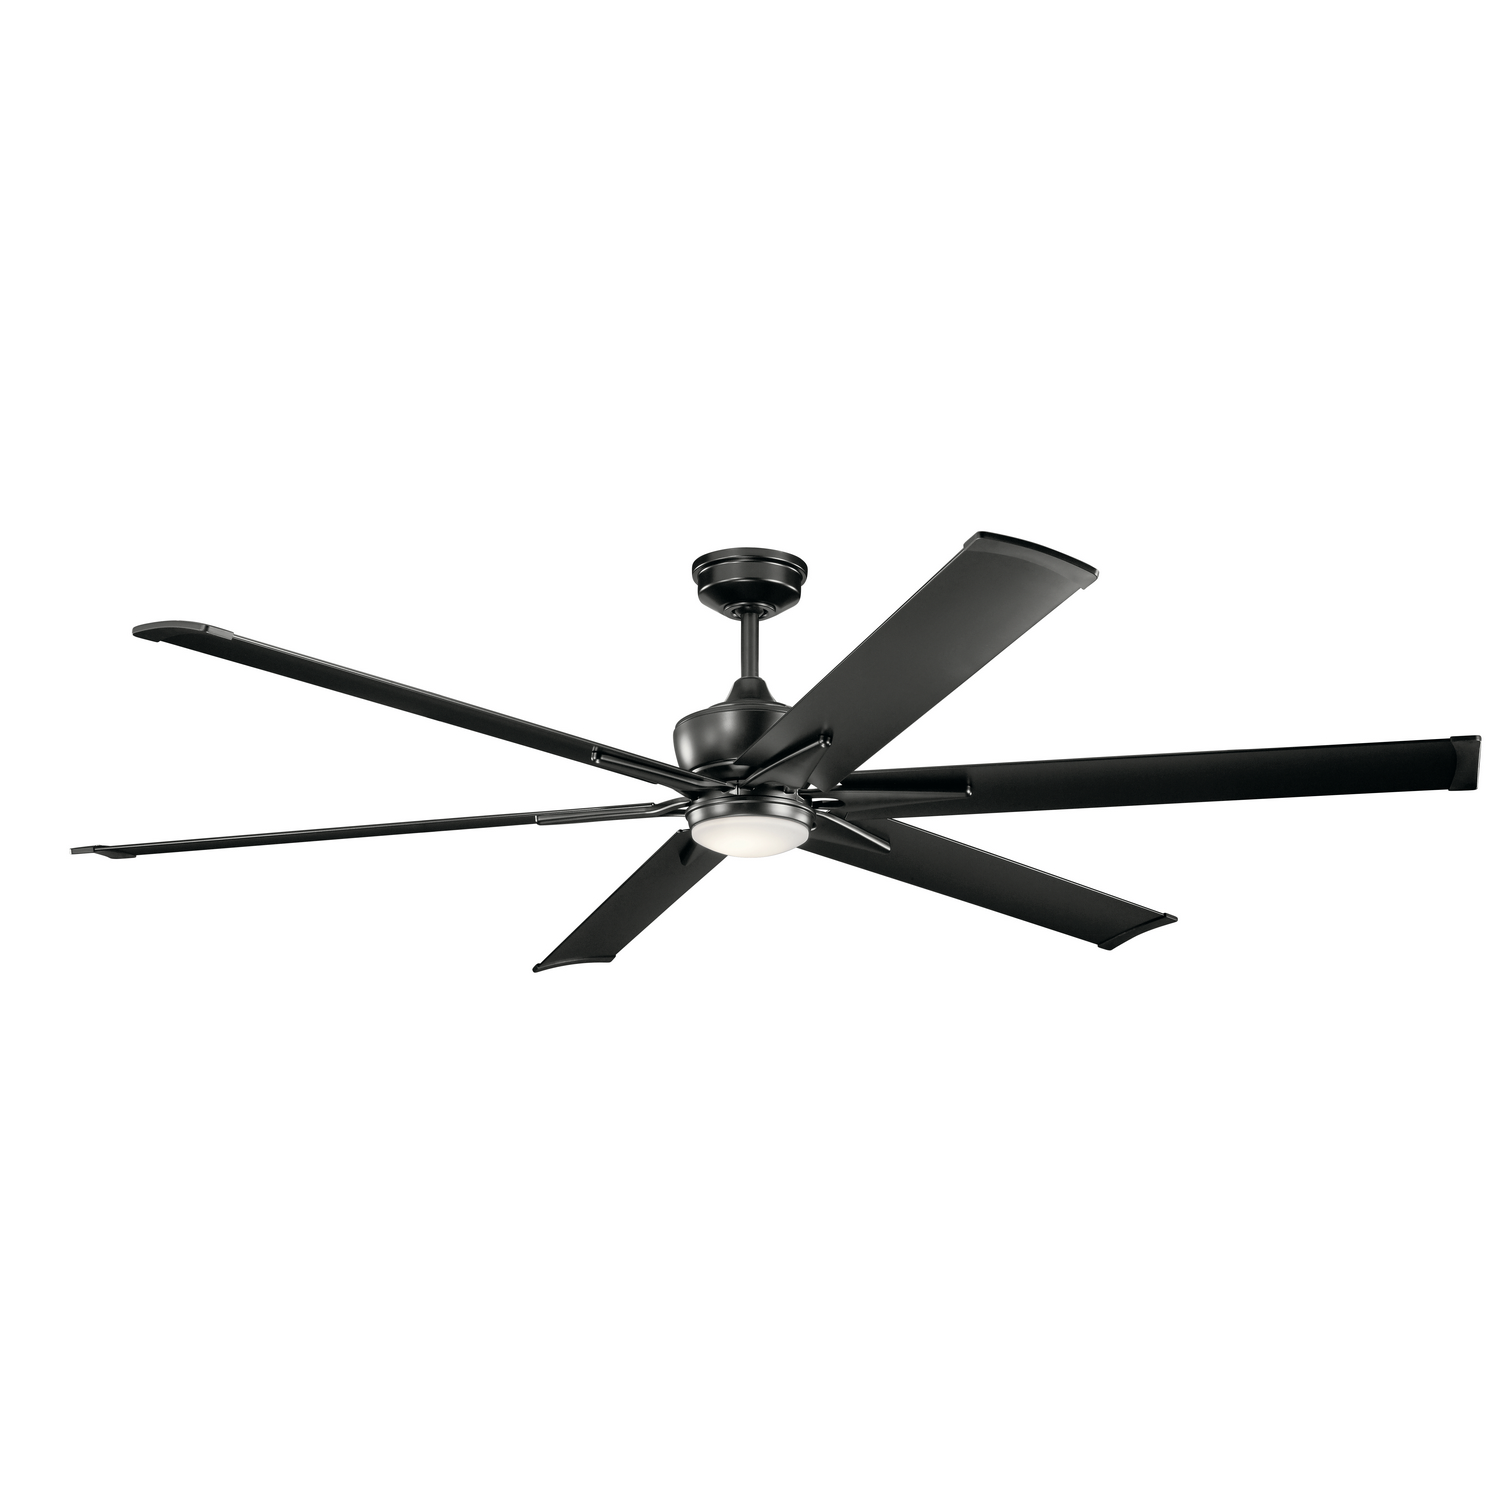 80 inchCeiling Fan from the Szeplo Patio collection by Kichler 300301SBK